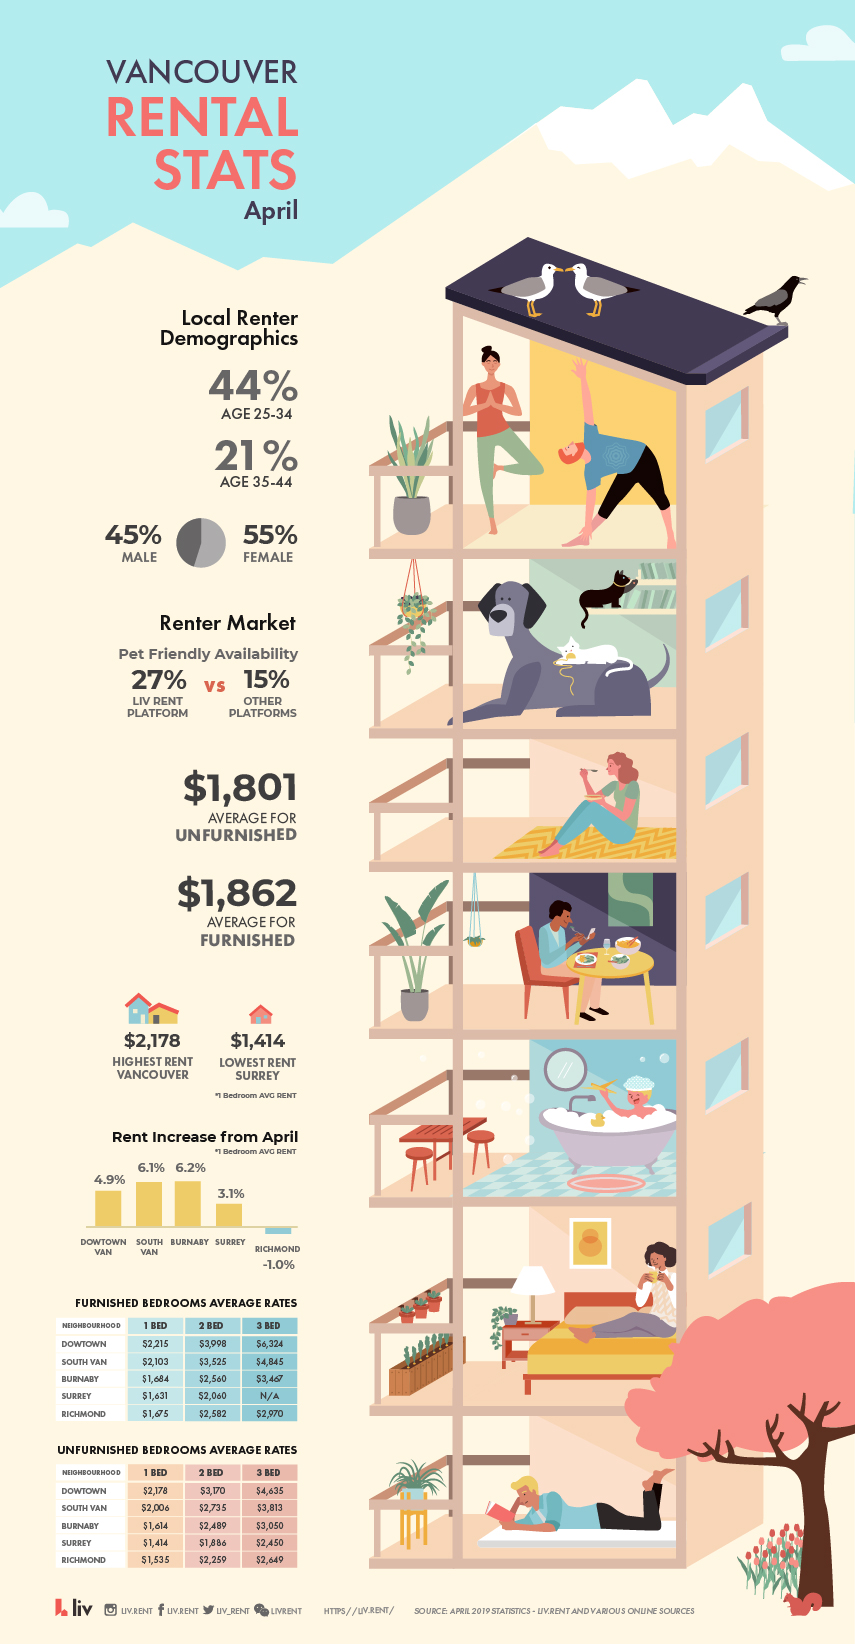 Vancouver Rental Stats April 2019 Infographic